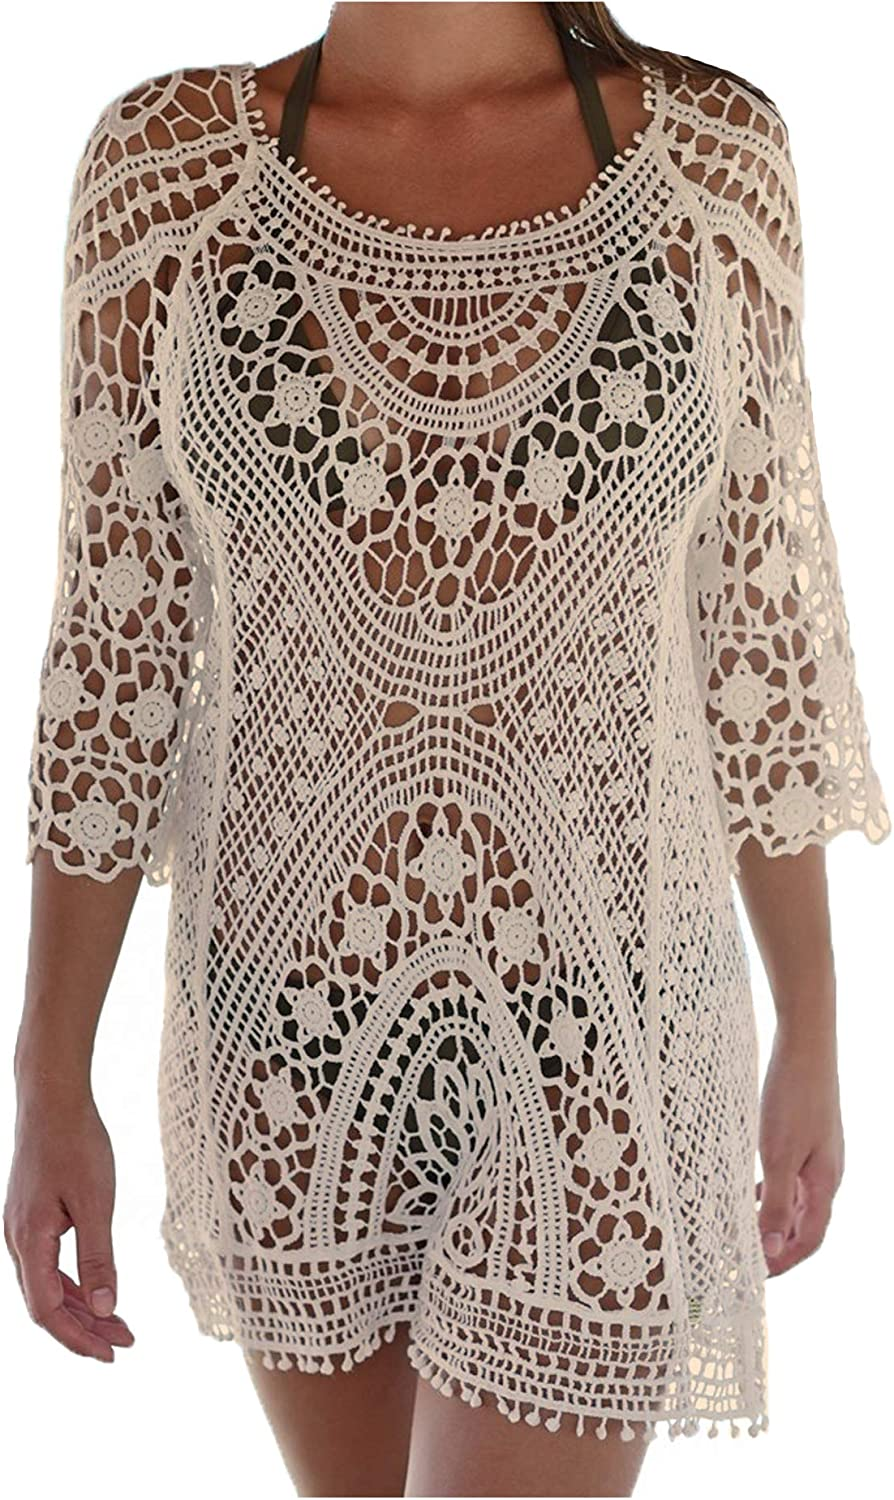 Wander Agio Beach Swimsuit for Women Sleeve Coverups Lace Bikini Cover Up Backless